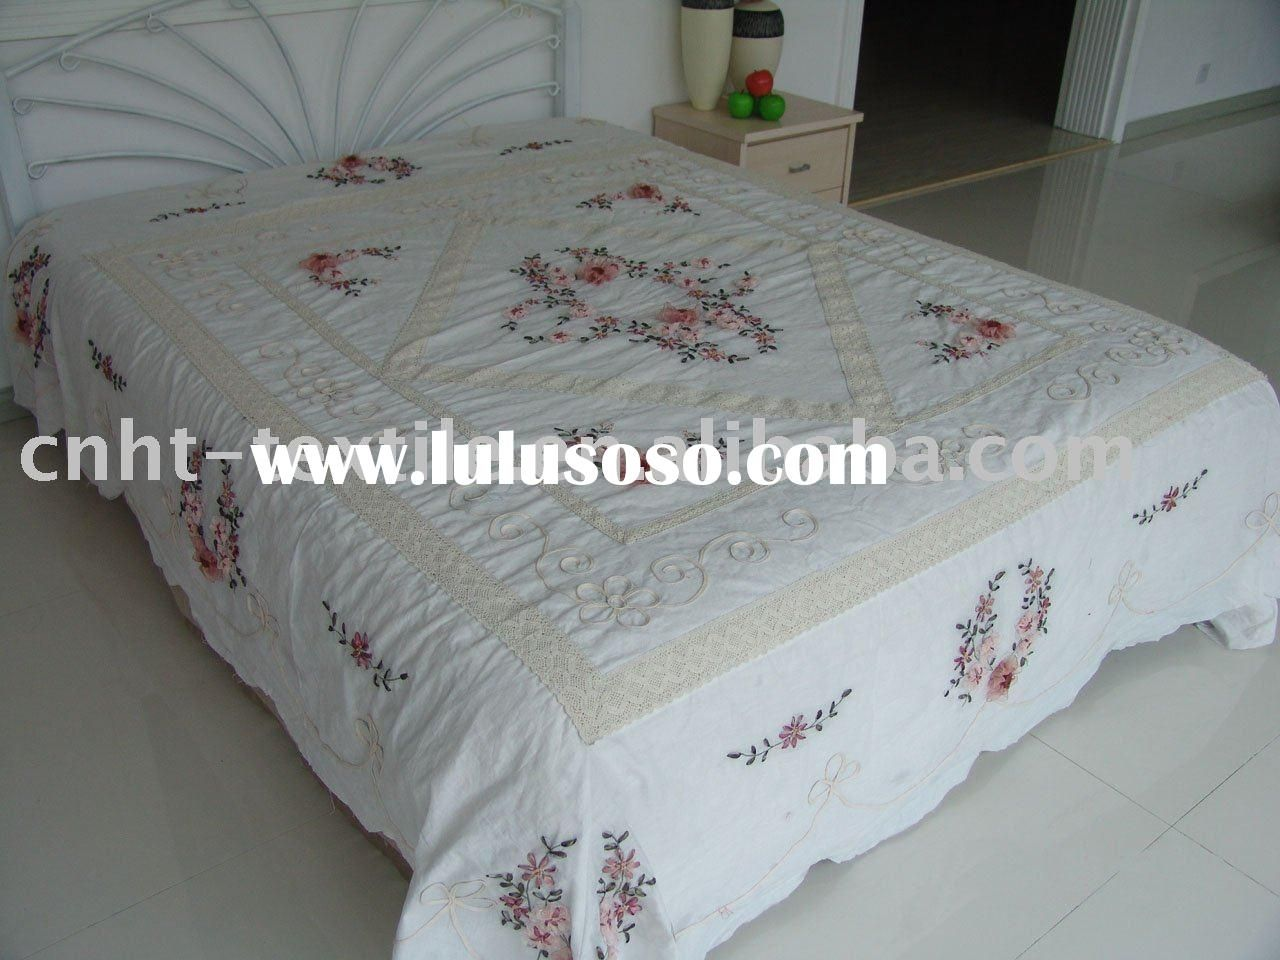 Brazilian embroidery bedspread designs - Ribbon Embroidery Designs 2011 New Design Ribbon Embroidery Bedspread Embroidery Flower Design